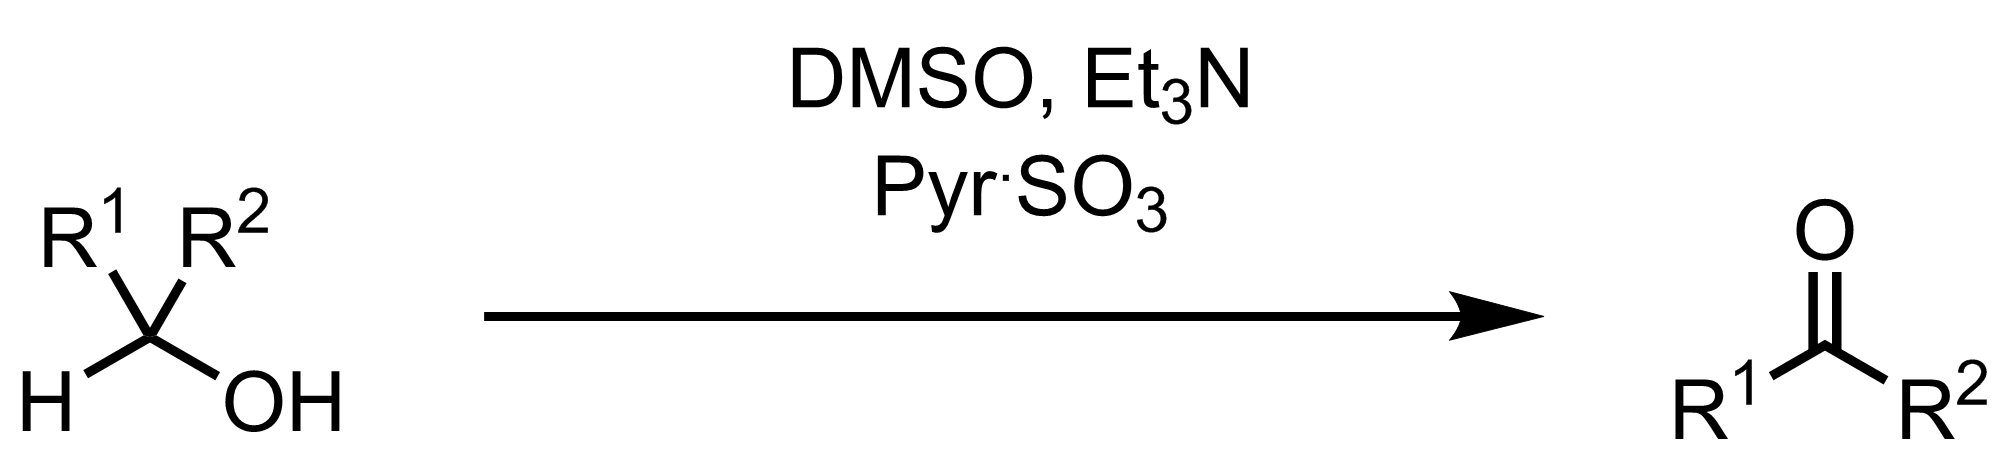 Schematic representation of the Parikh-Doering Oxidation.